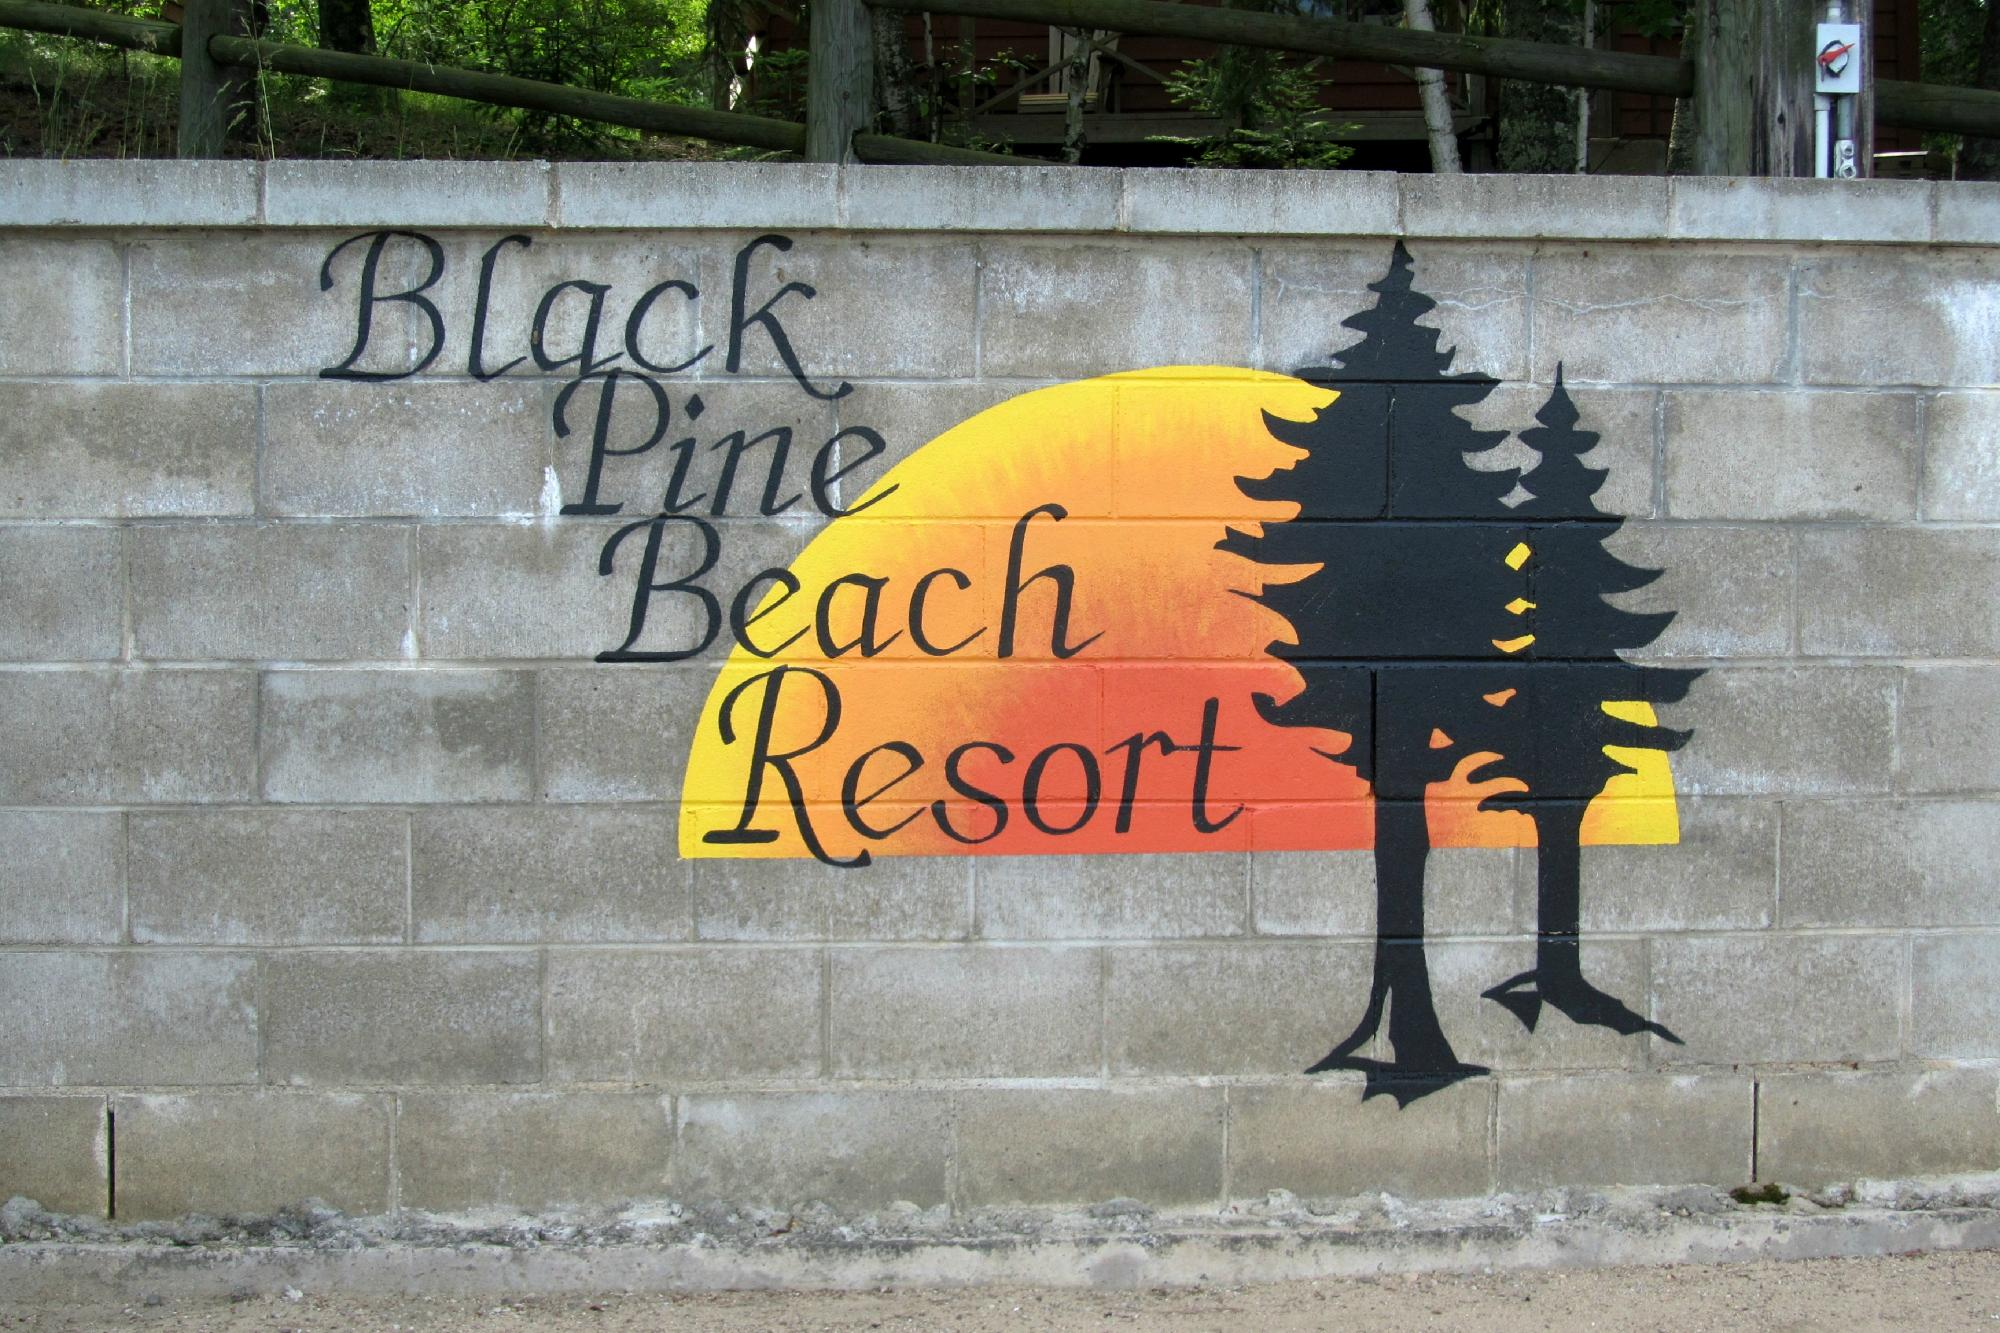 ‪Black Pine Beach Resort‬